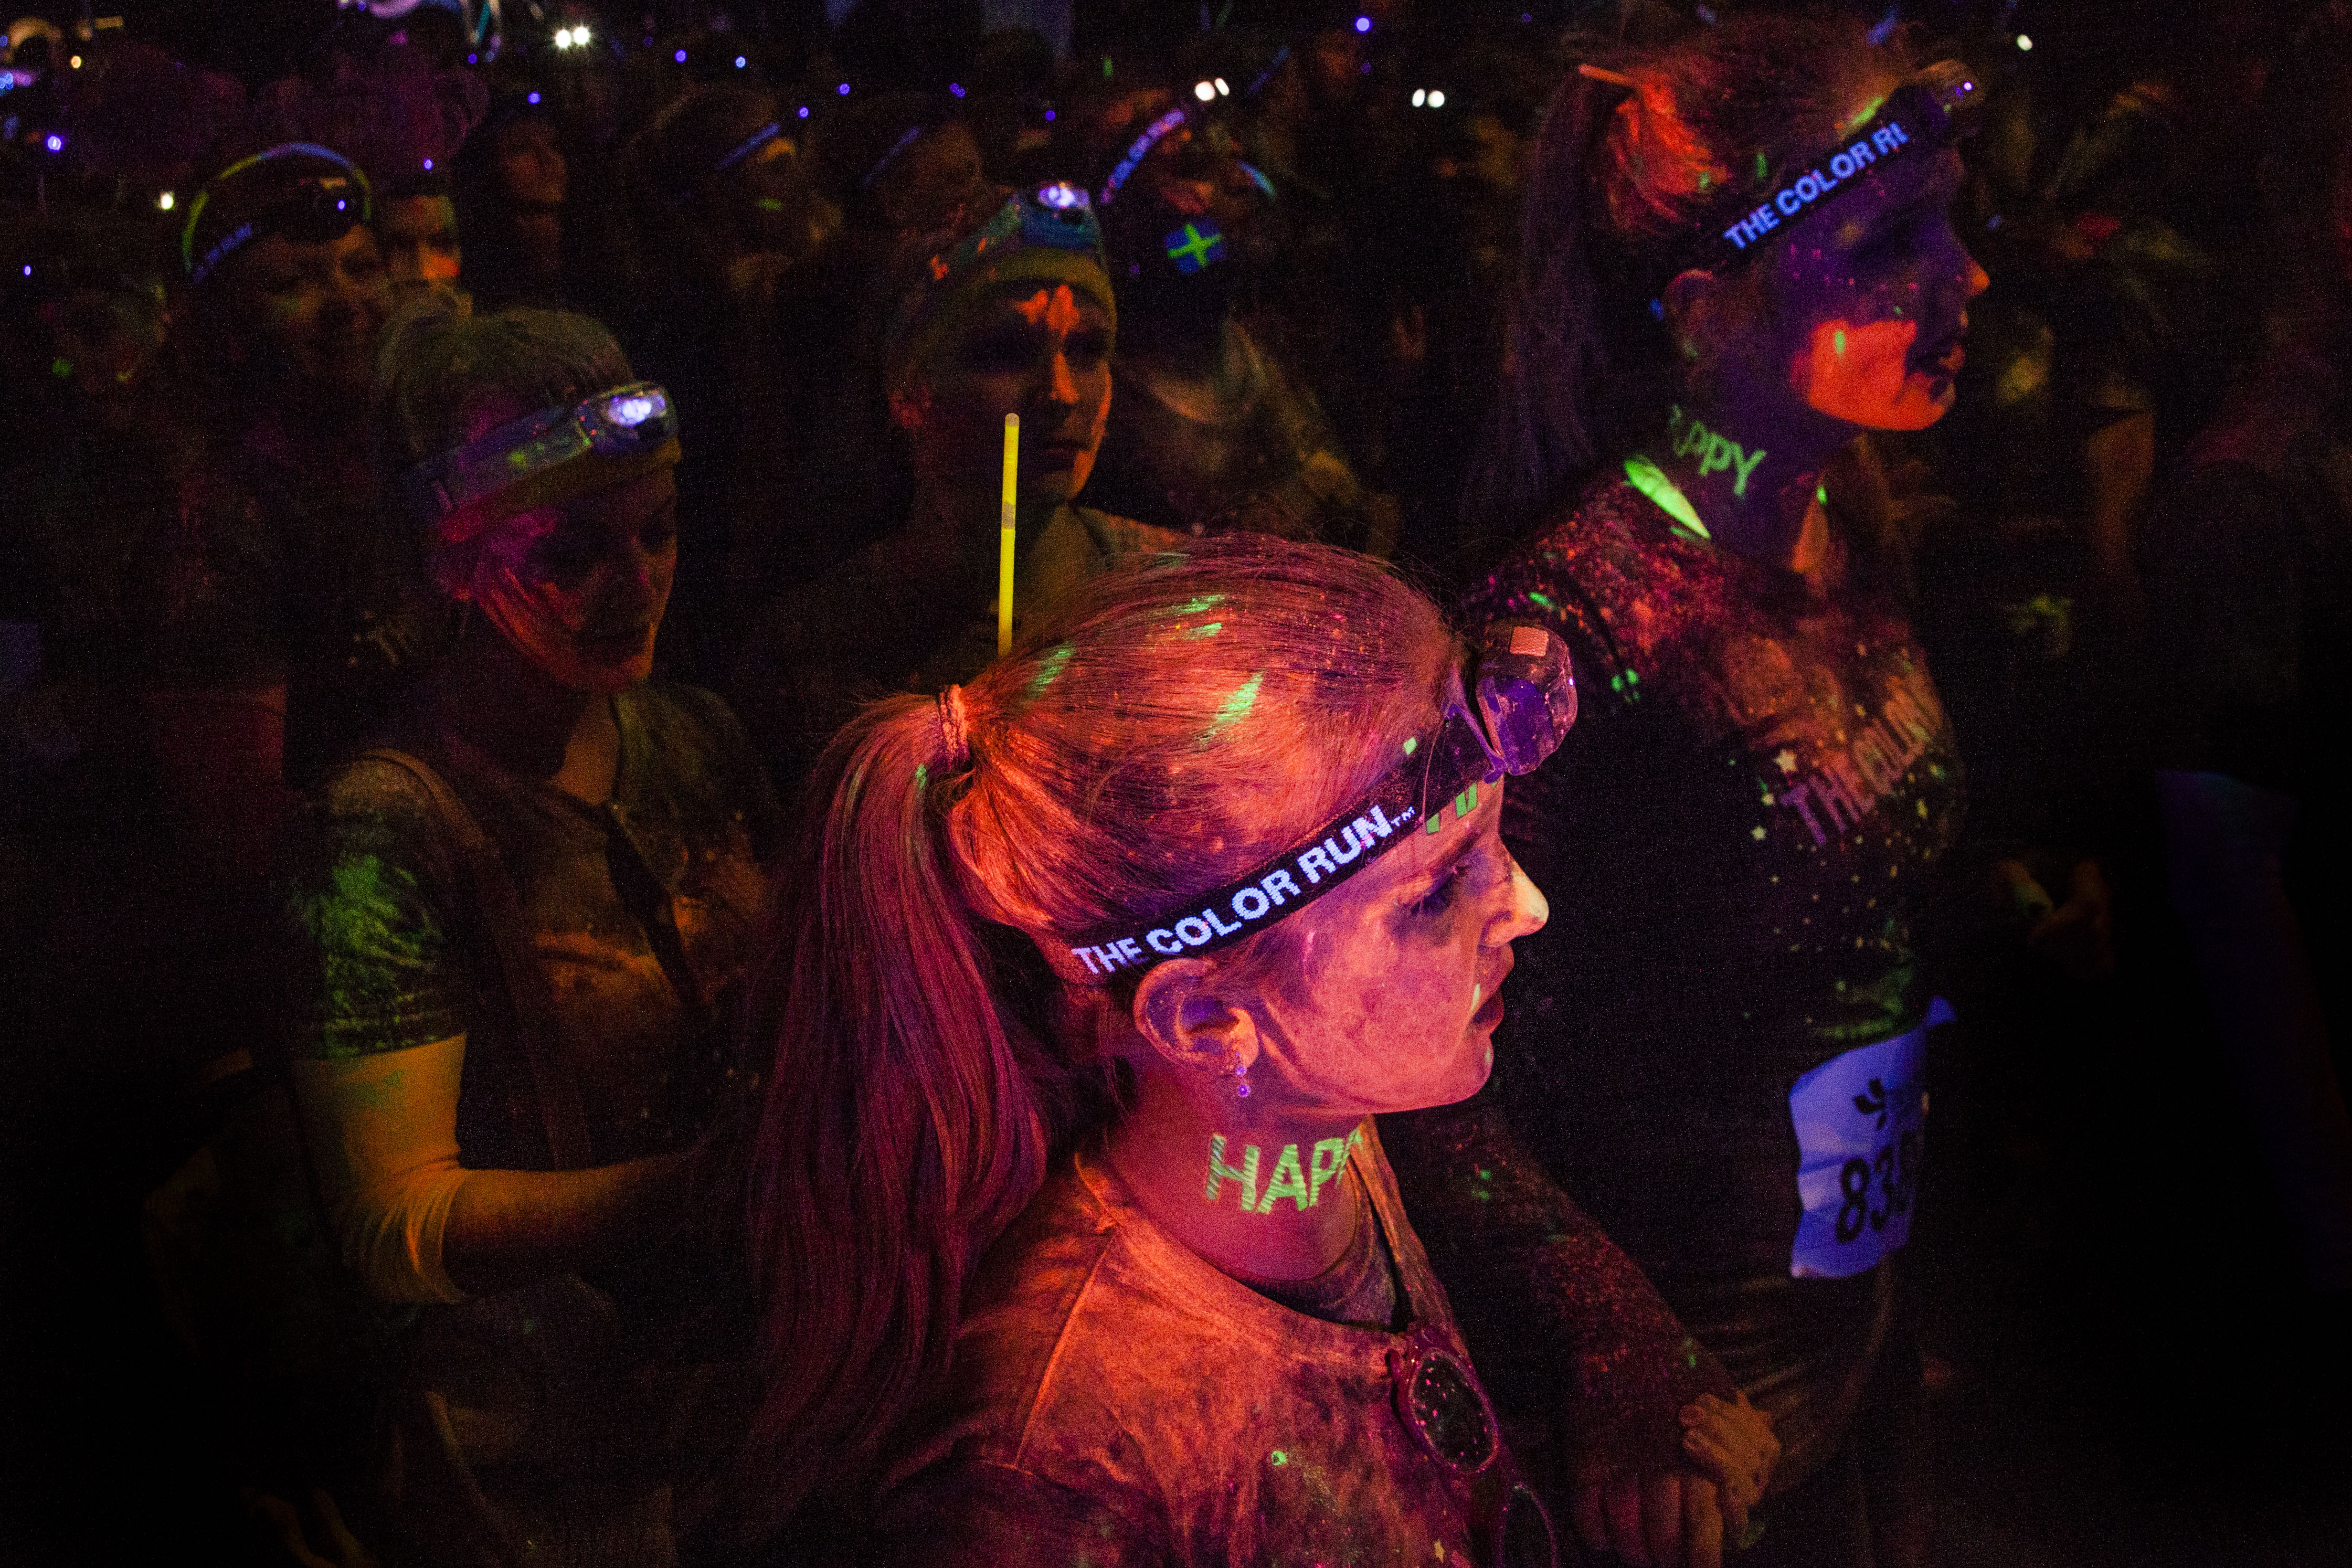 TheColorRunNight2015_HelenaLundquist_mindre_7